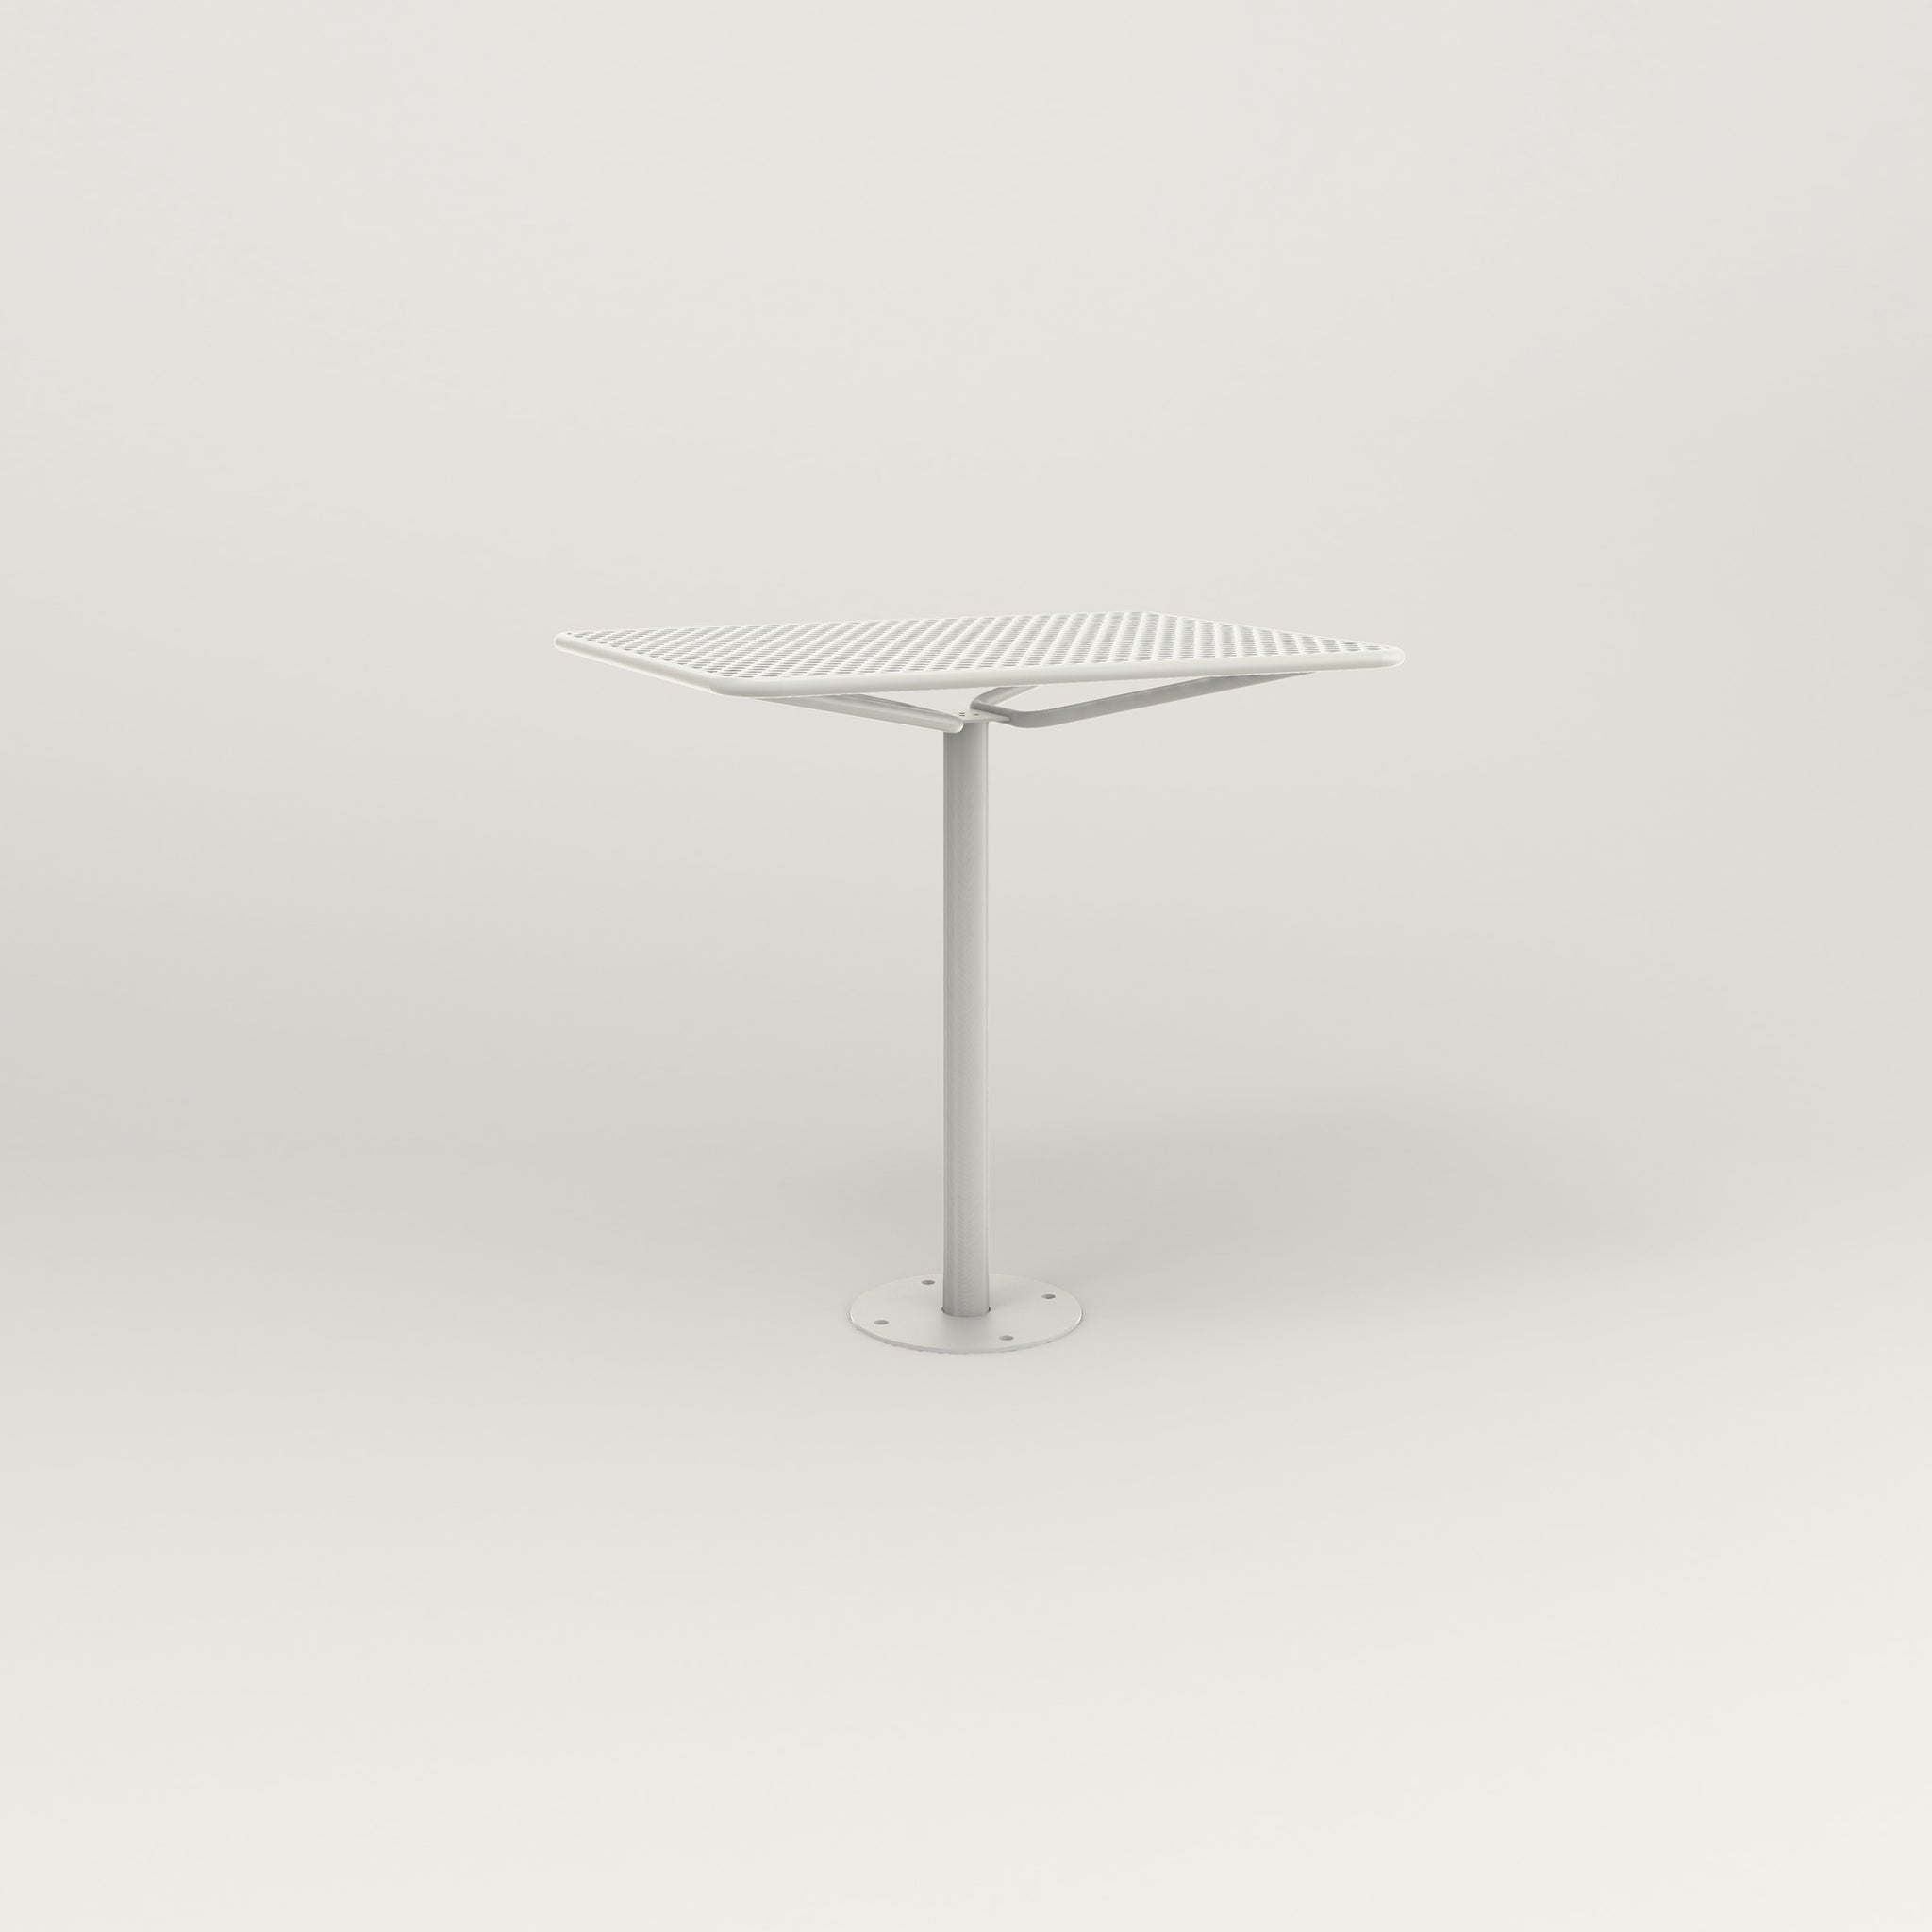 RAD Cafe Table, Rectangular Bolt Down Base in perforated steel and white powder coat.